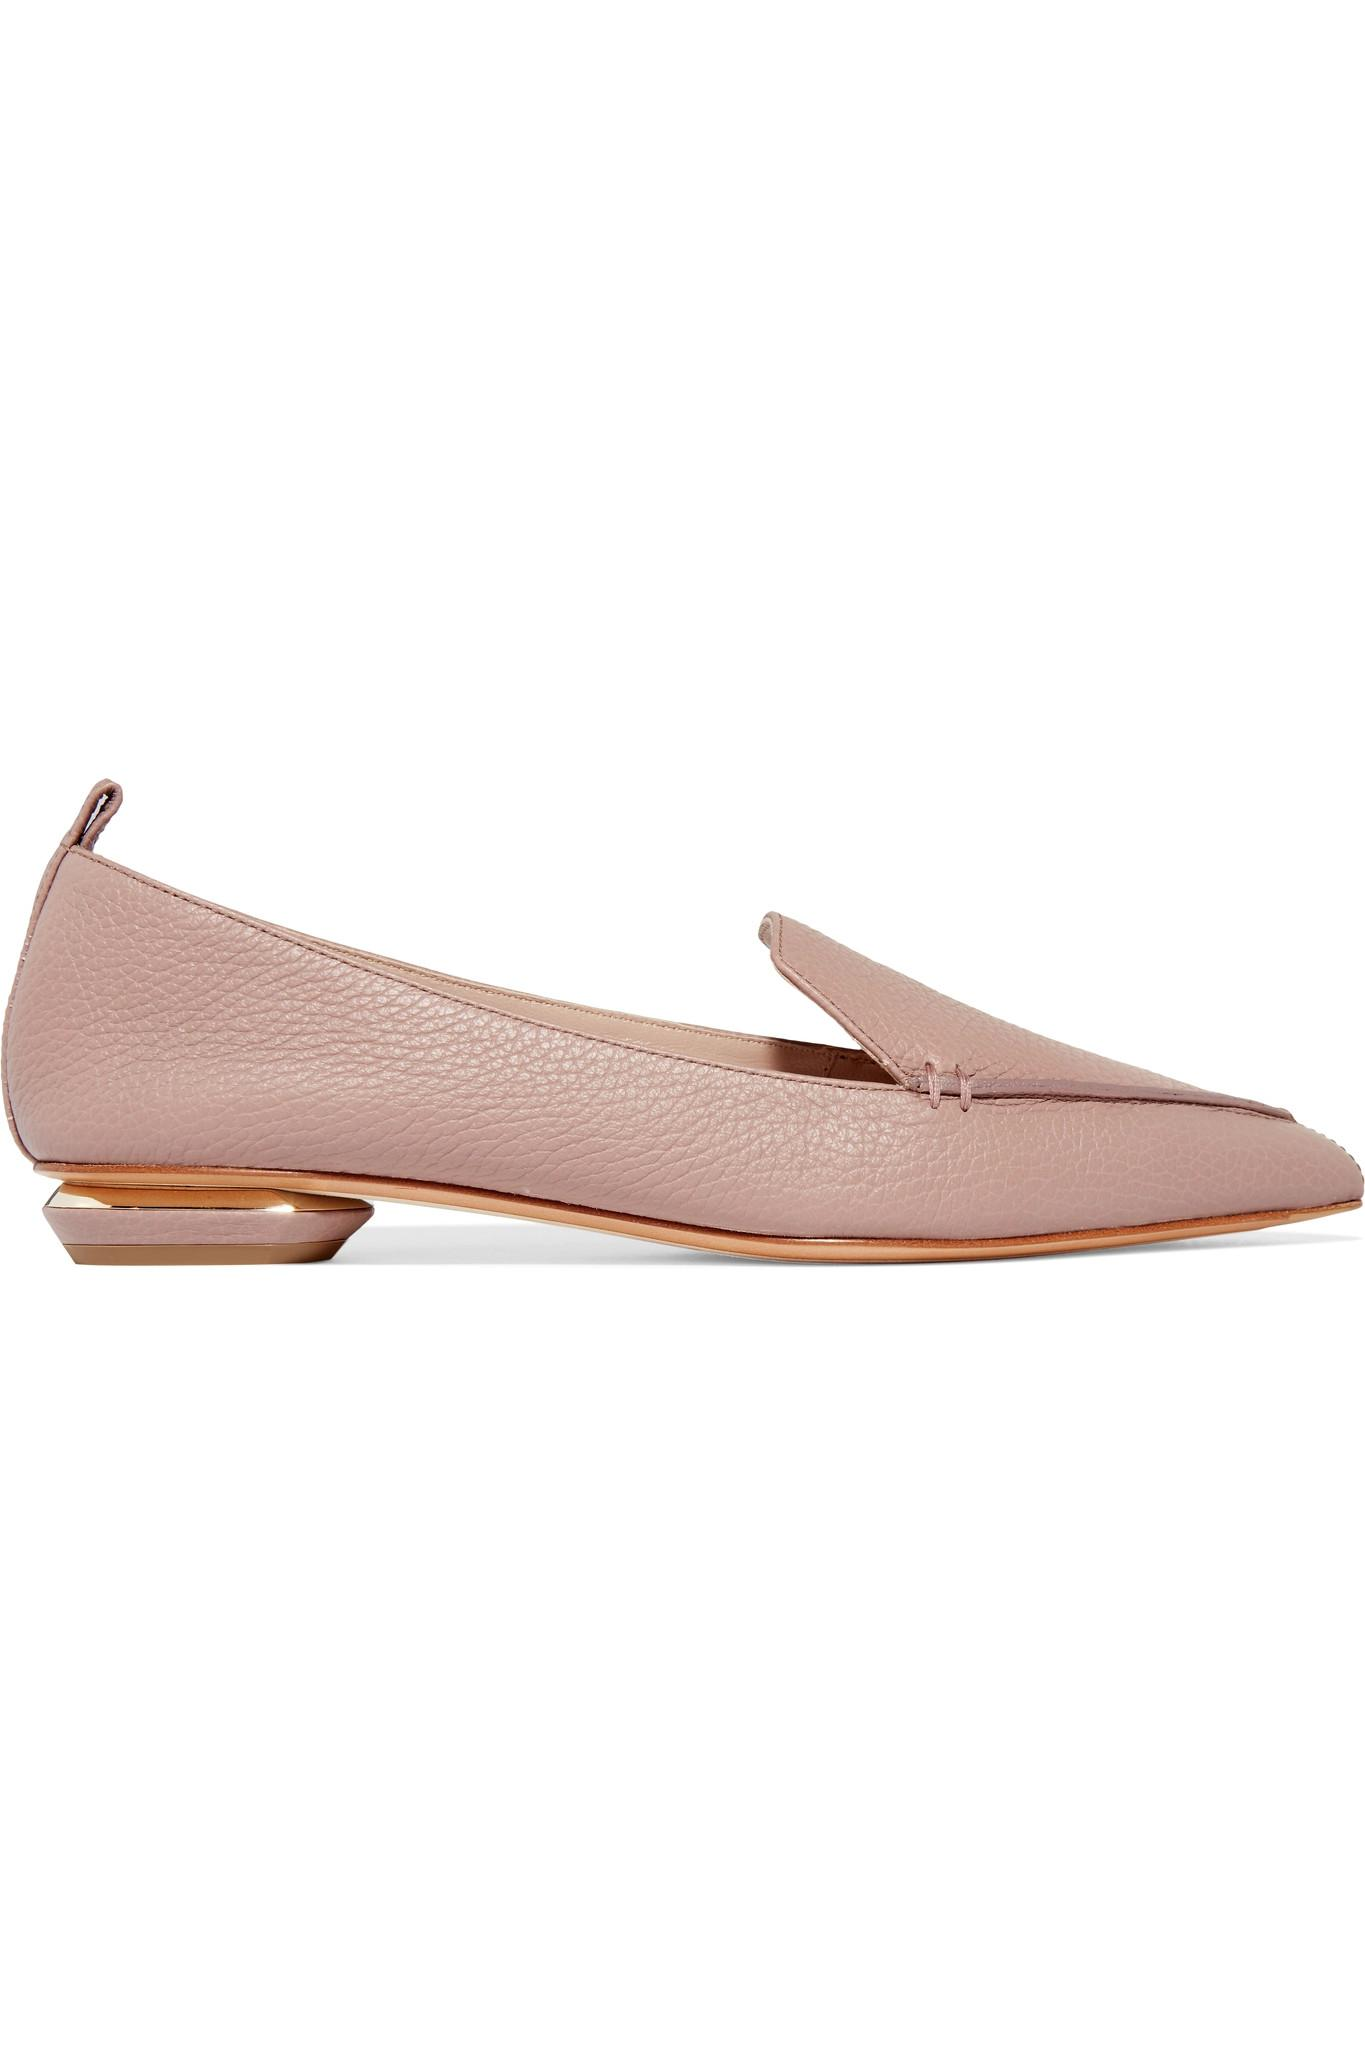 9be7269d06fd Lyst - Nicholas Kirkwood Beya Textured-leather Point-toe Flats in Pink